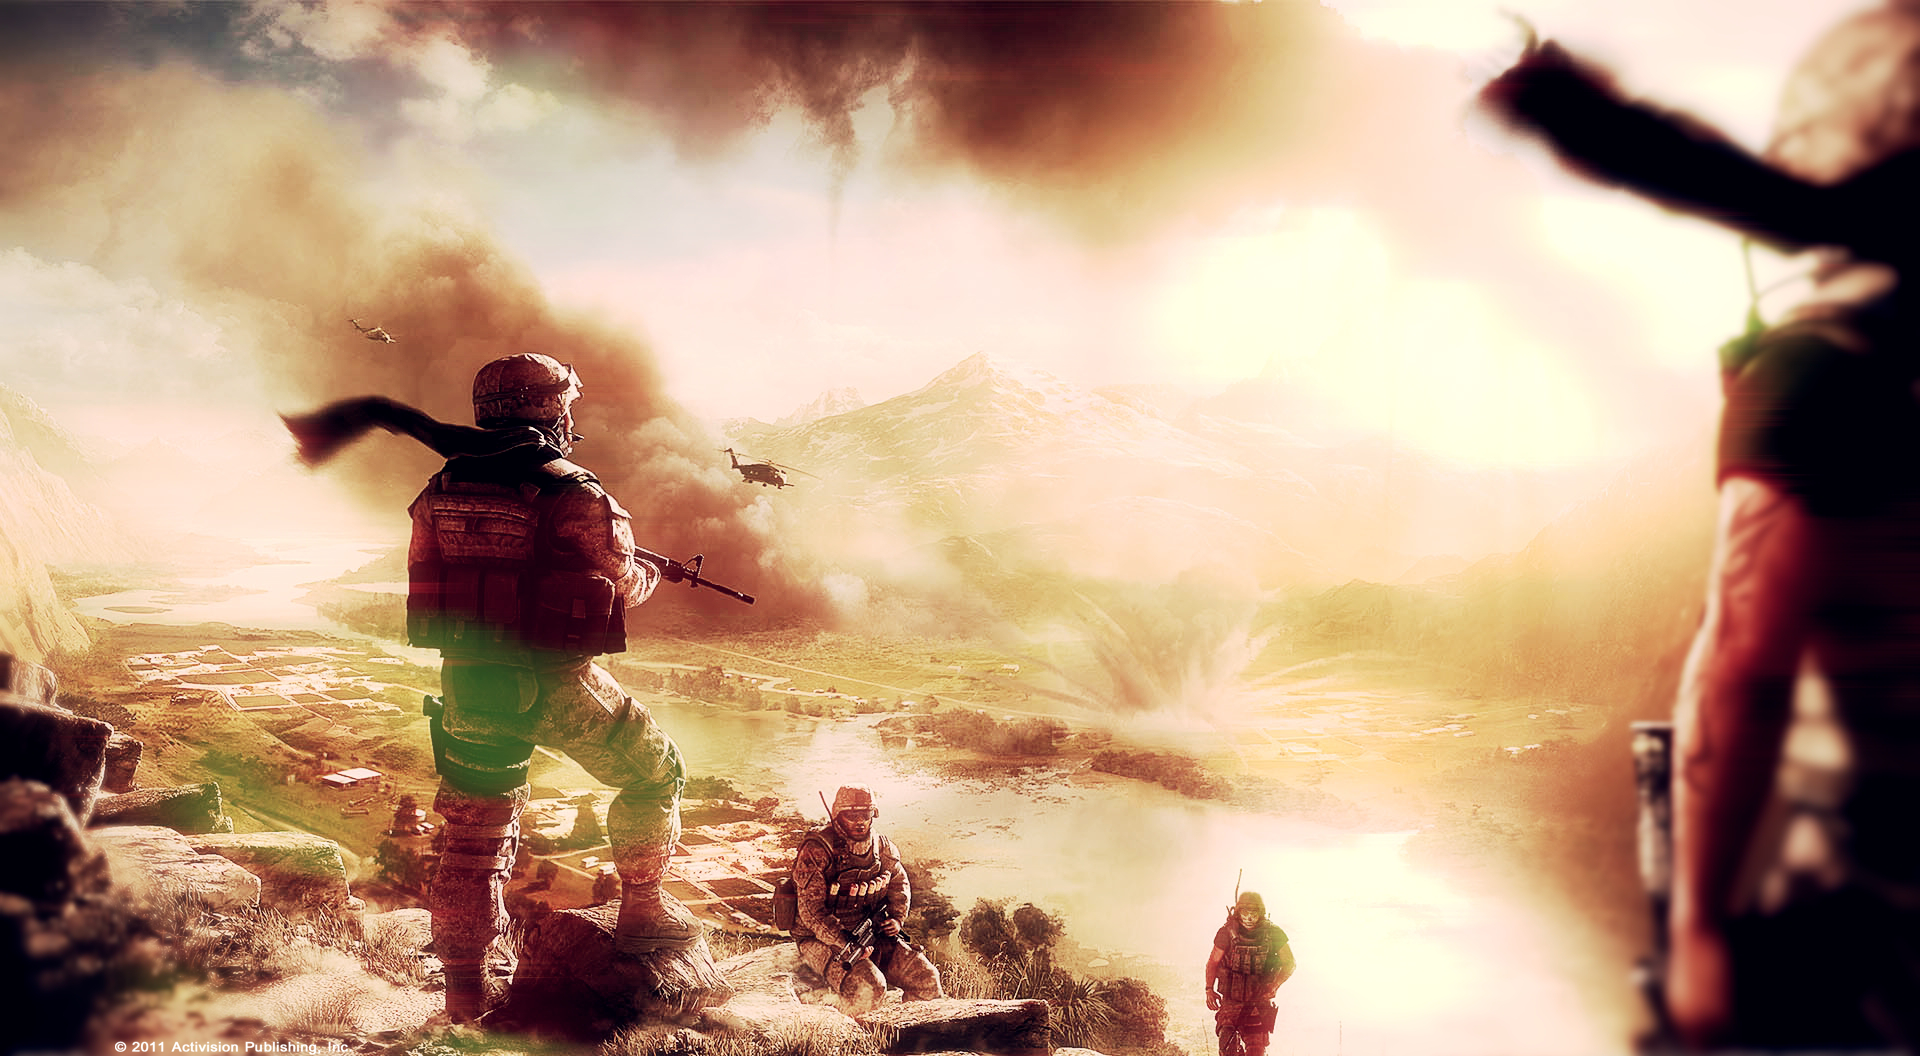 Modern Warfare 3 - Wallpaper 2 by MuuseDesign